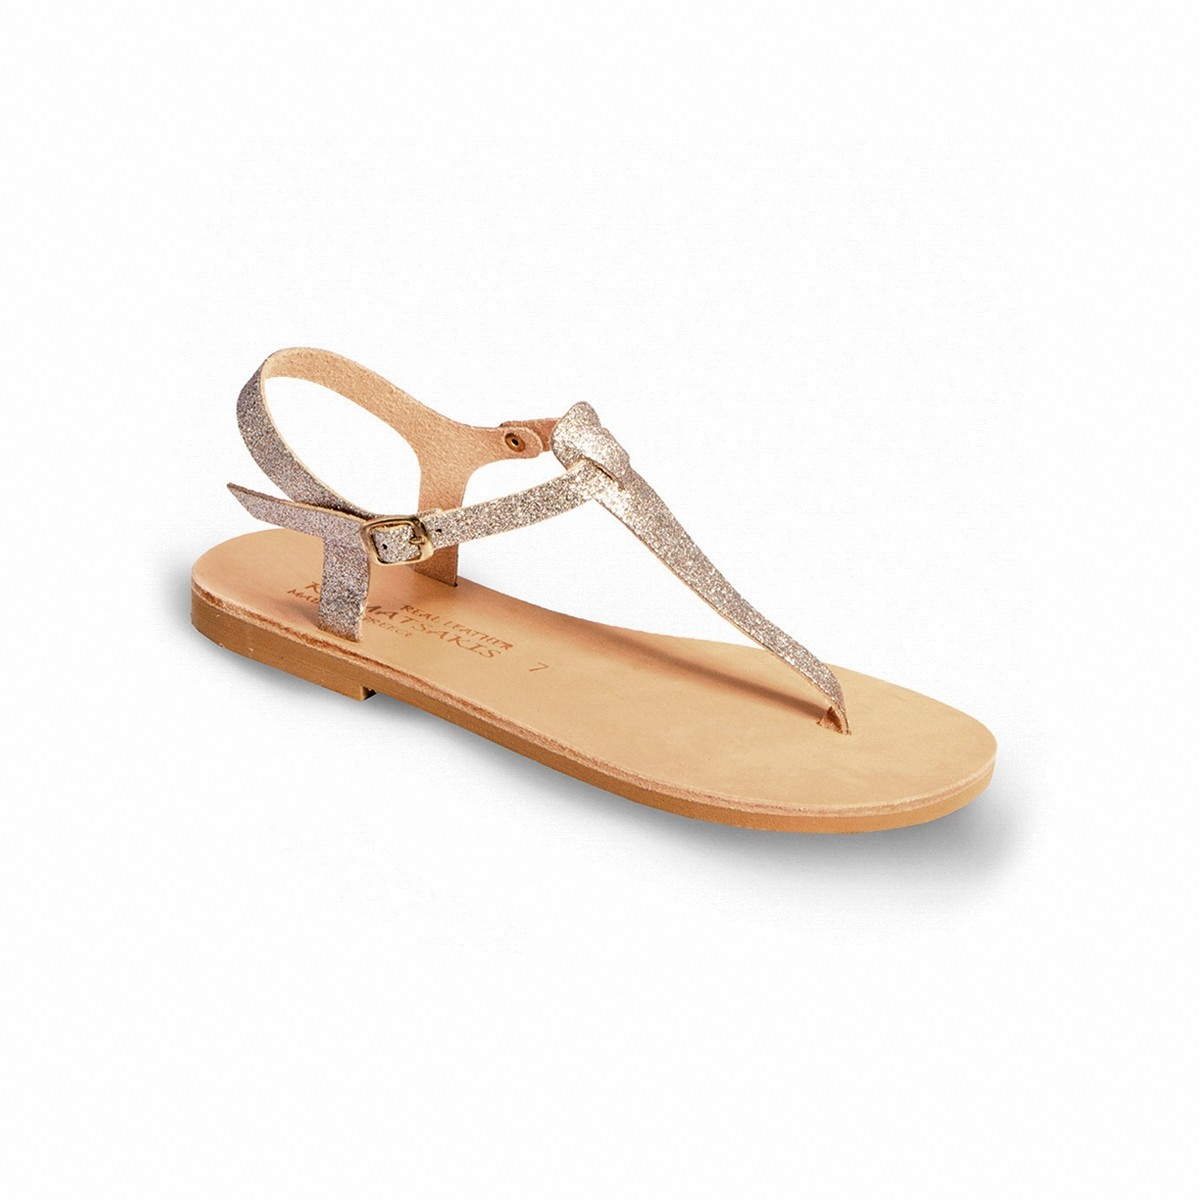 39b61ad1a Price From  €24.00. €24.00EURAvailability  In Stock. Women Leather Sandals  Klimatsakis 536